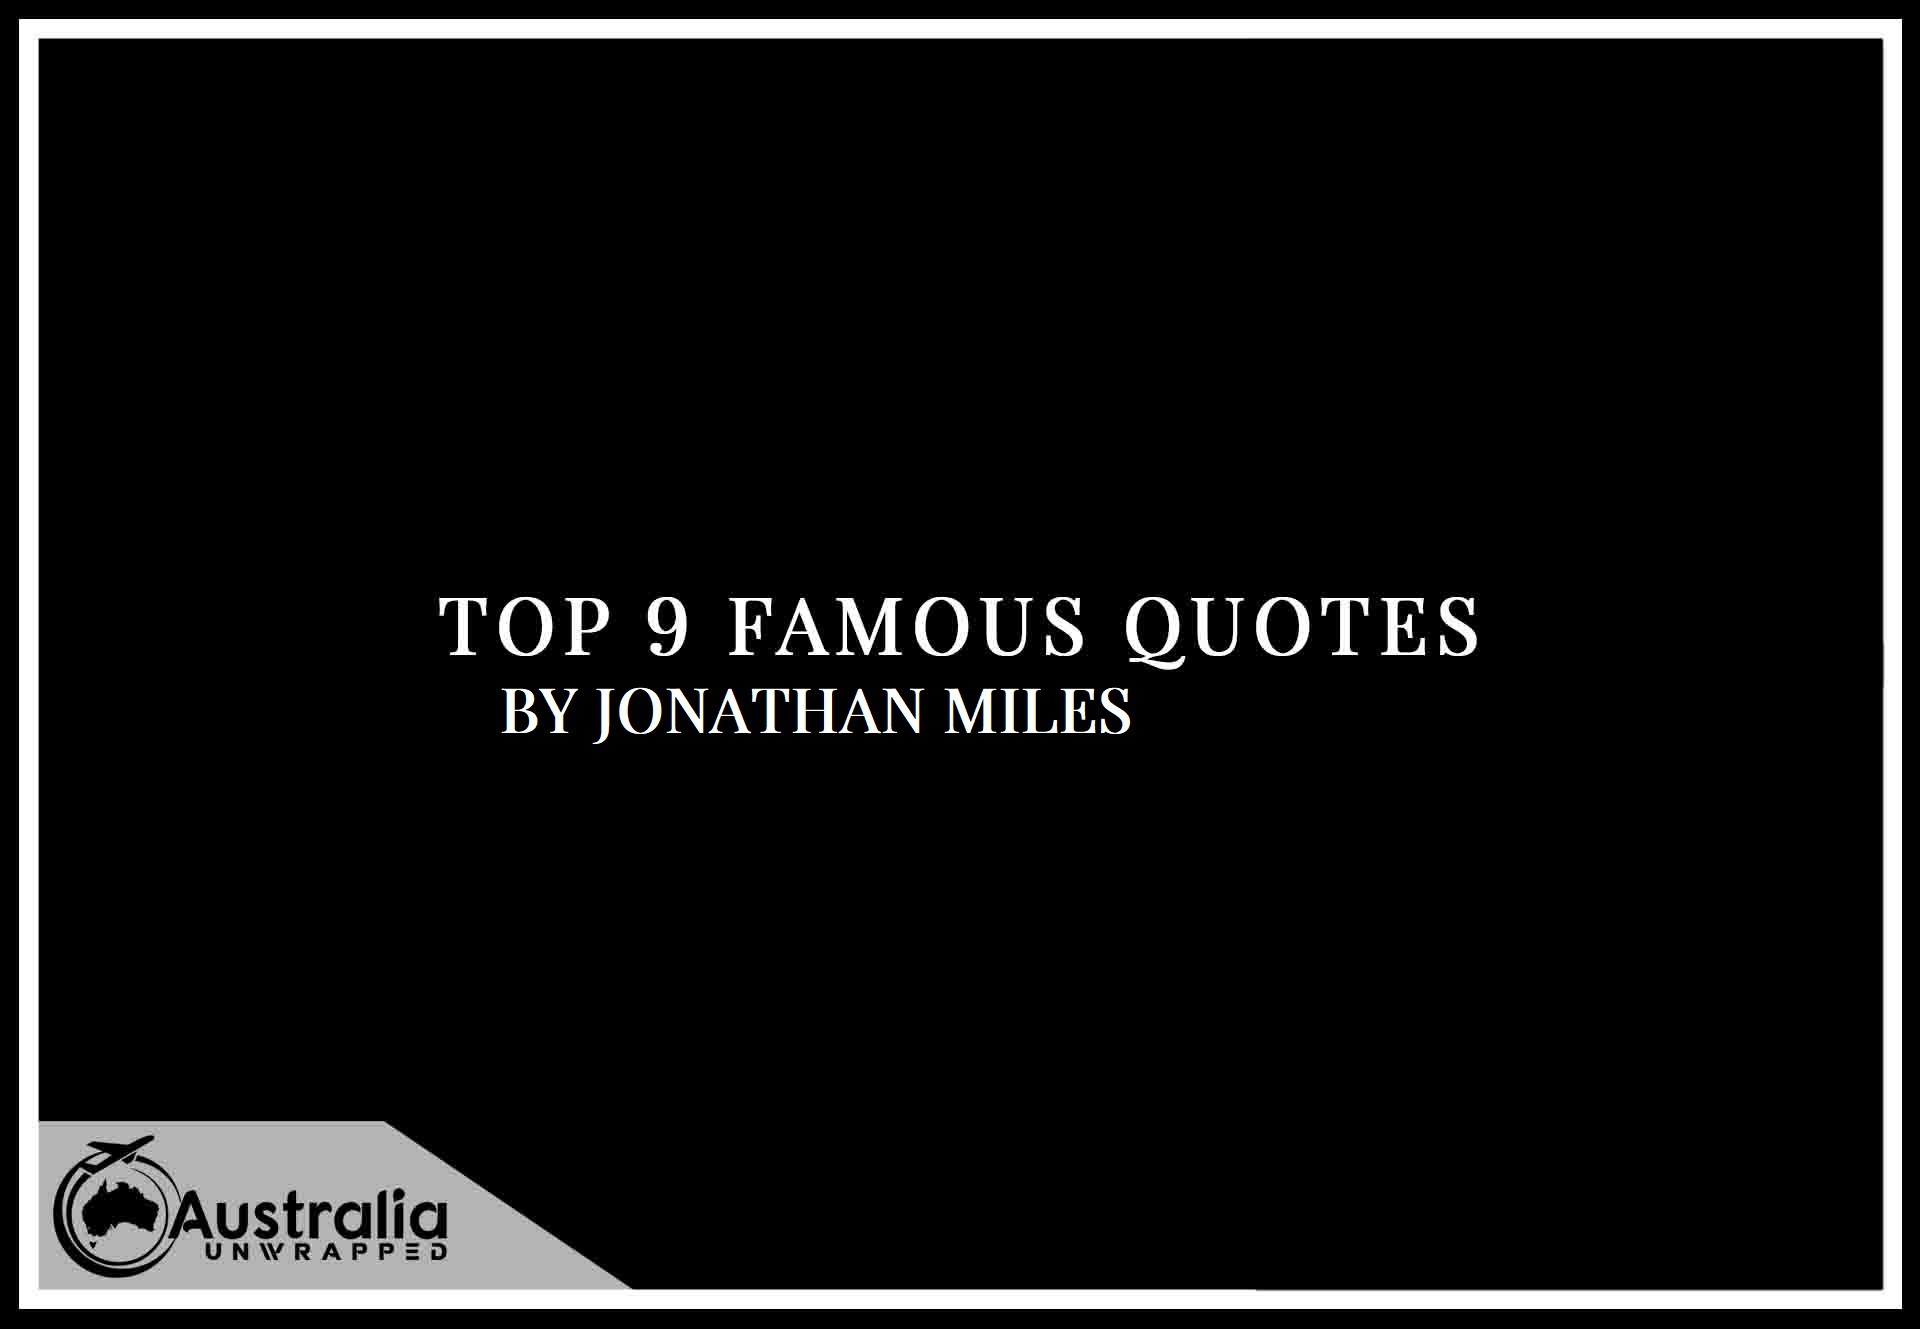 Top 9 Famous Quotes by Author Jonathan Miles